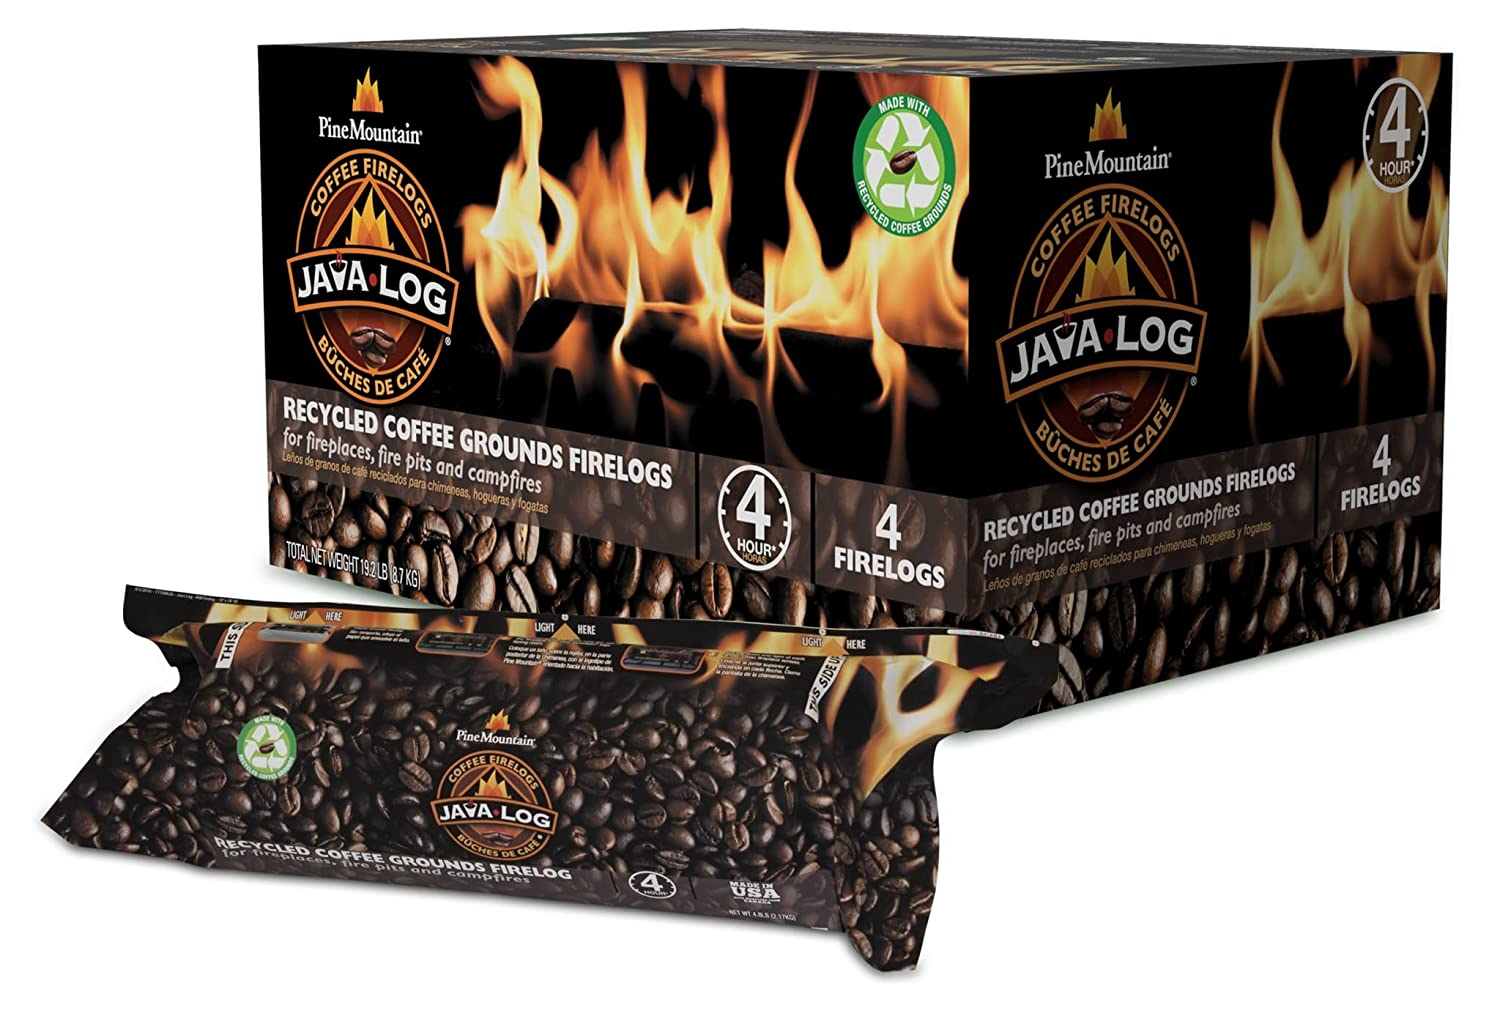 Pine Mountain 4152501471 Java-Log Firelog, 4-Hour Burn Time, Recycled Coffee Grounds, 4 Logs Jarden